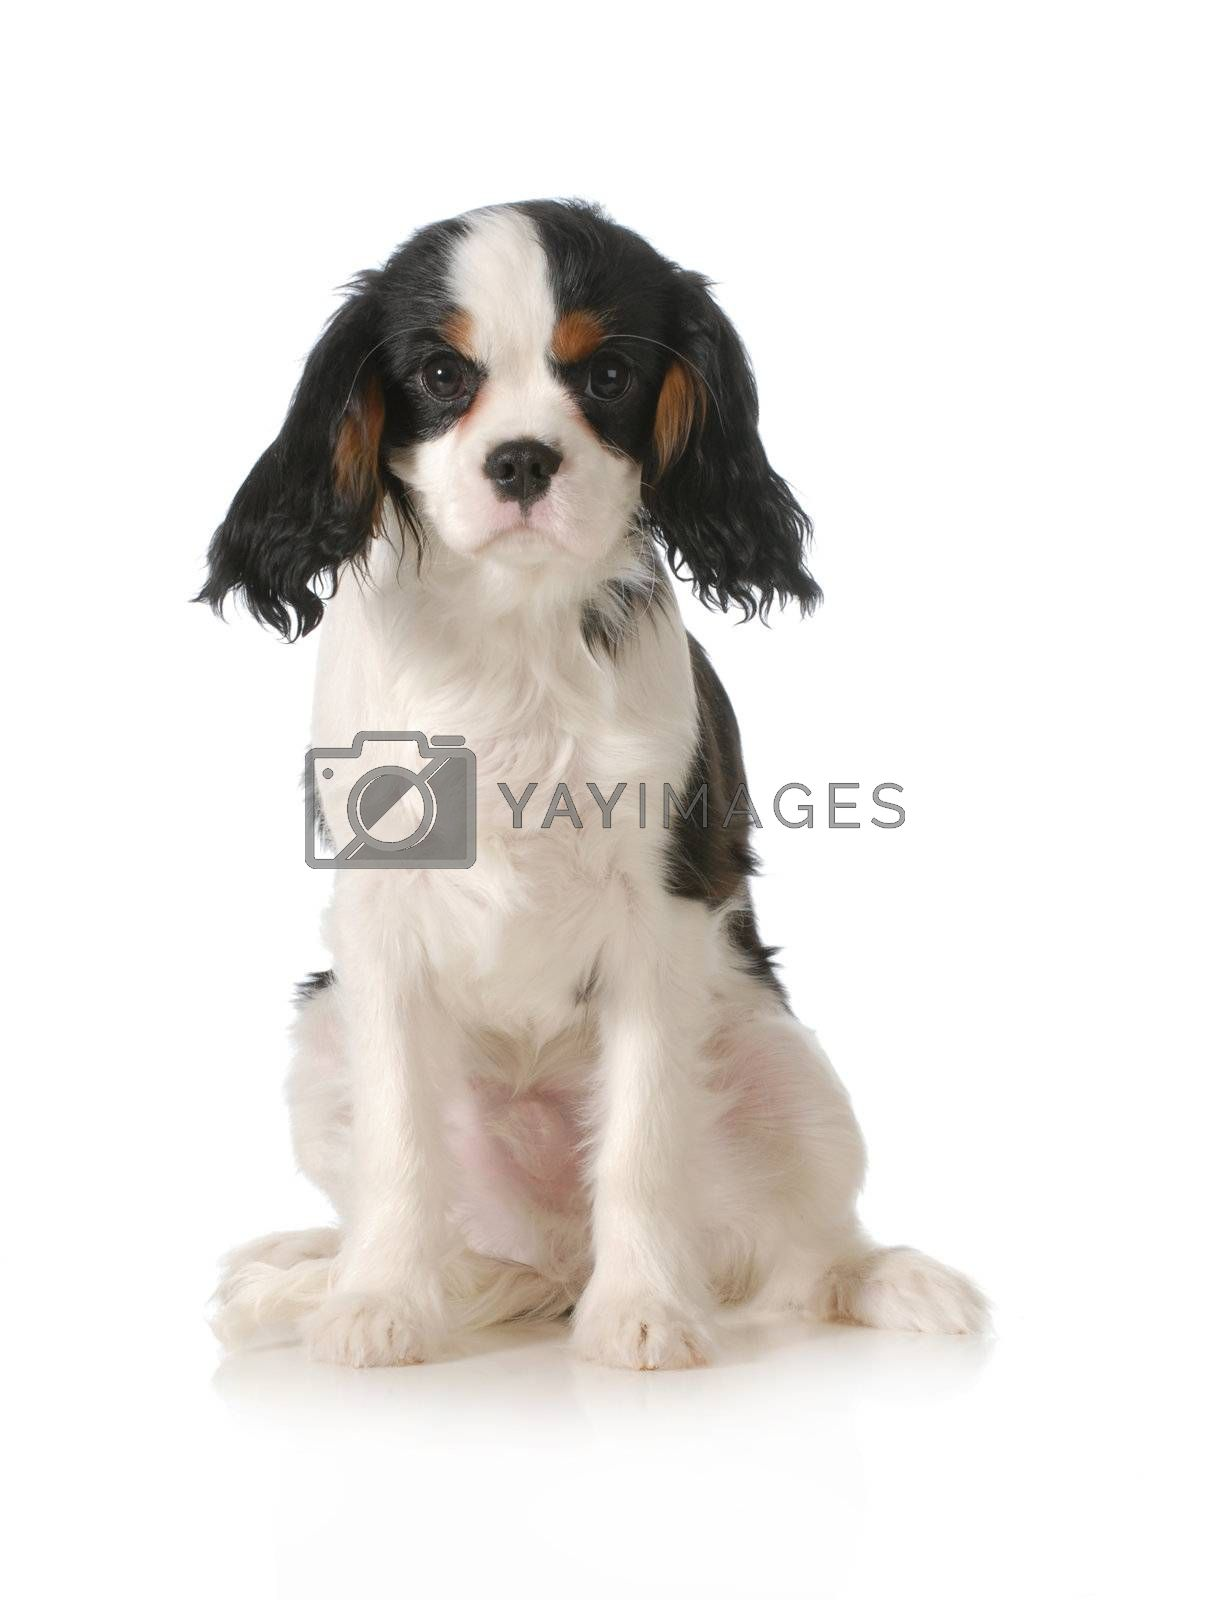 cavalier king charles spaniel male puppy sitting looking at viewer on white background - five months old